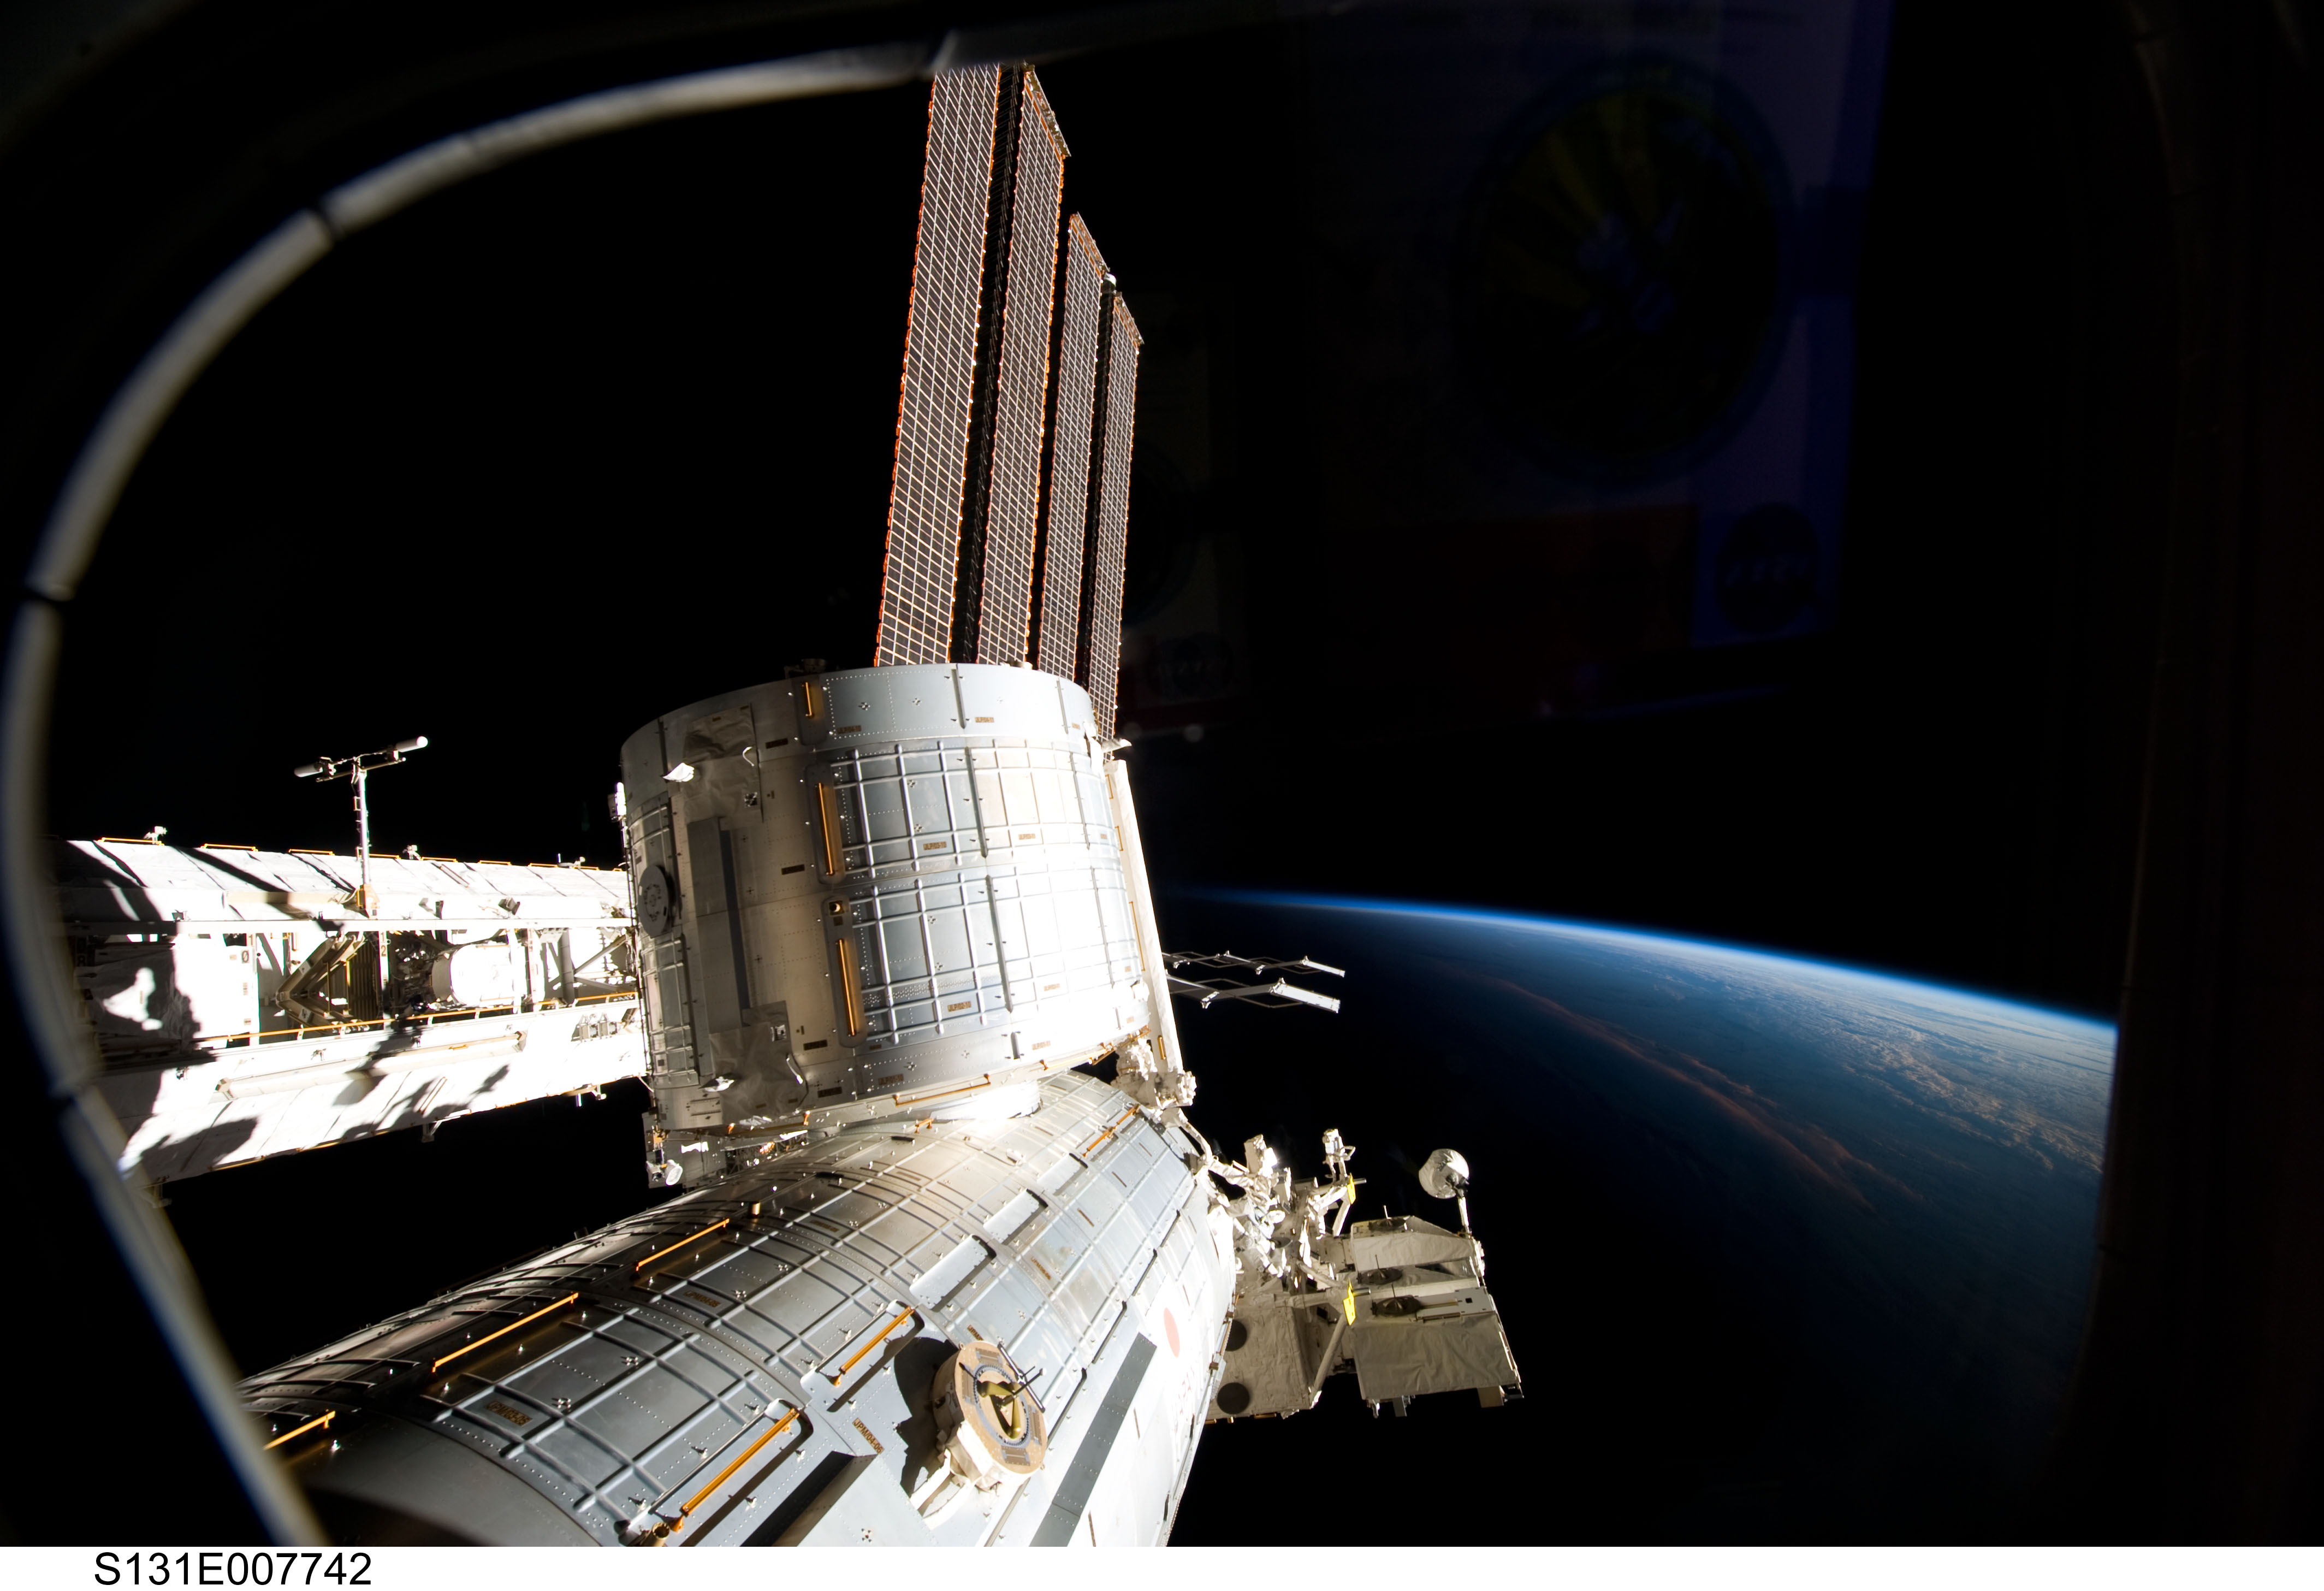 A Large Space Station Over Earth